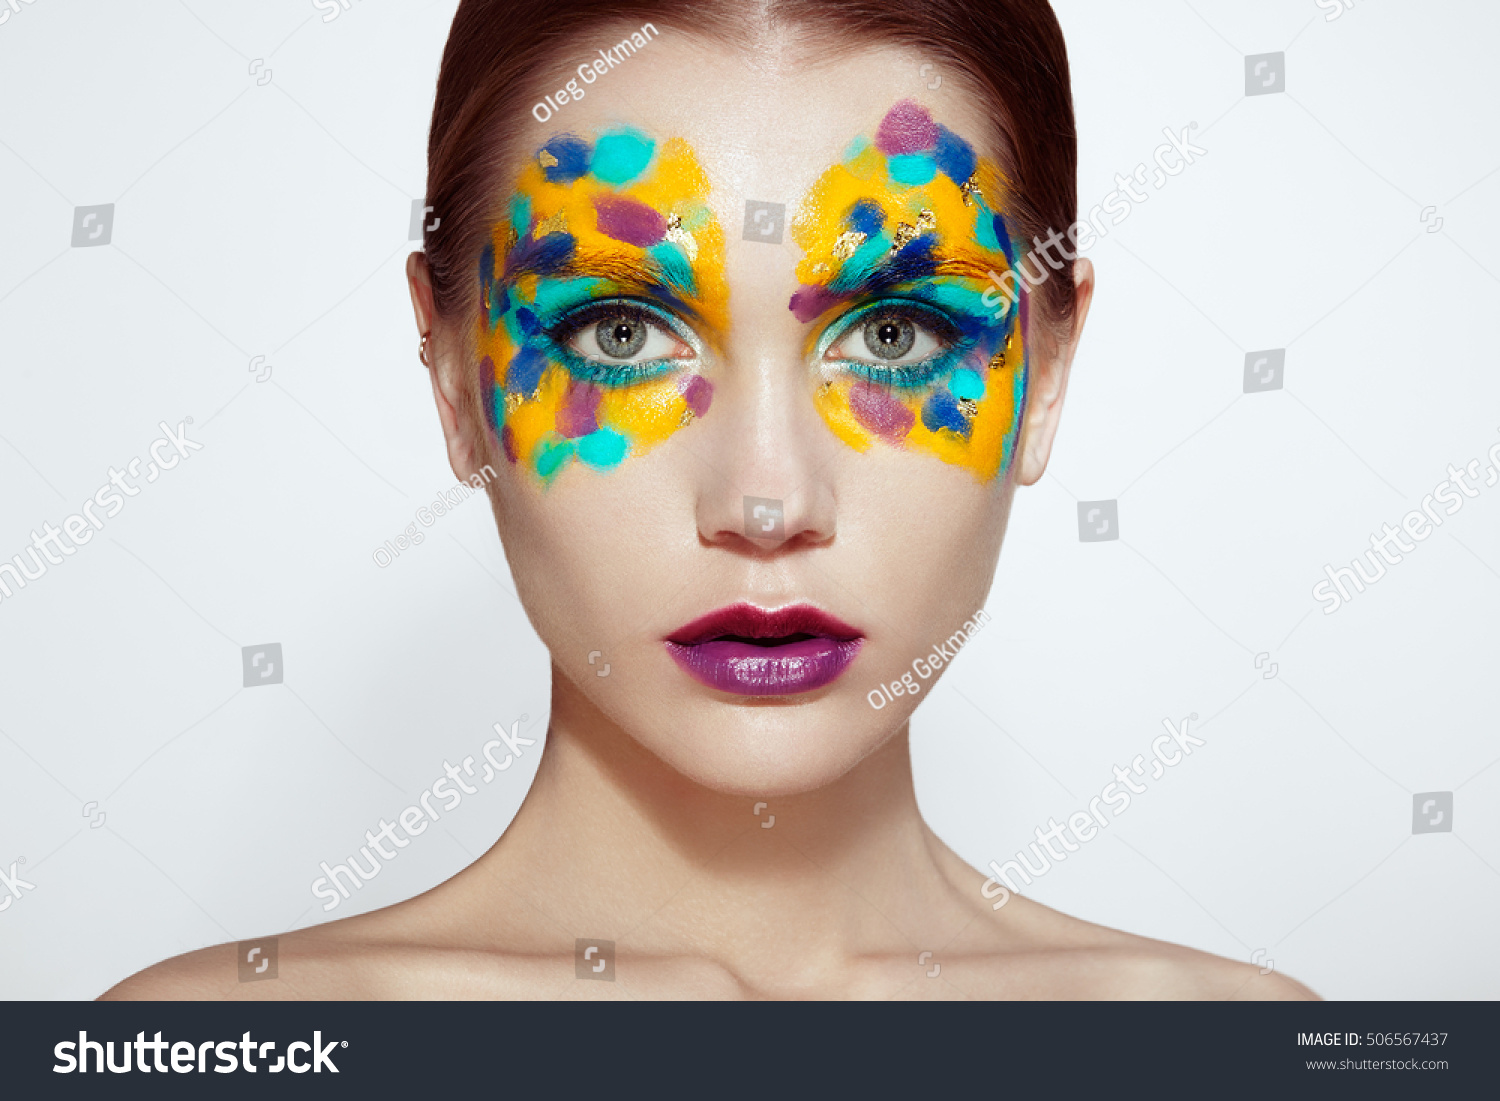 Beautiful Woman Face. Beauty Girl Face With Colorful